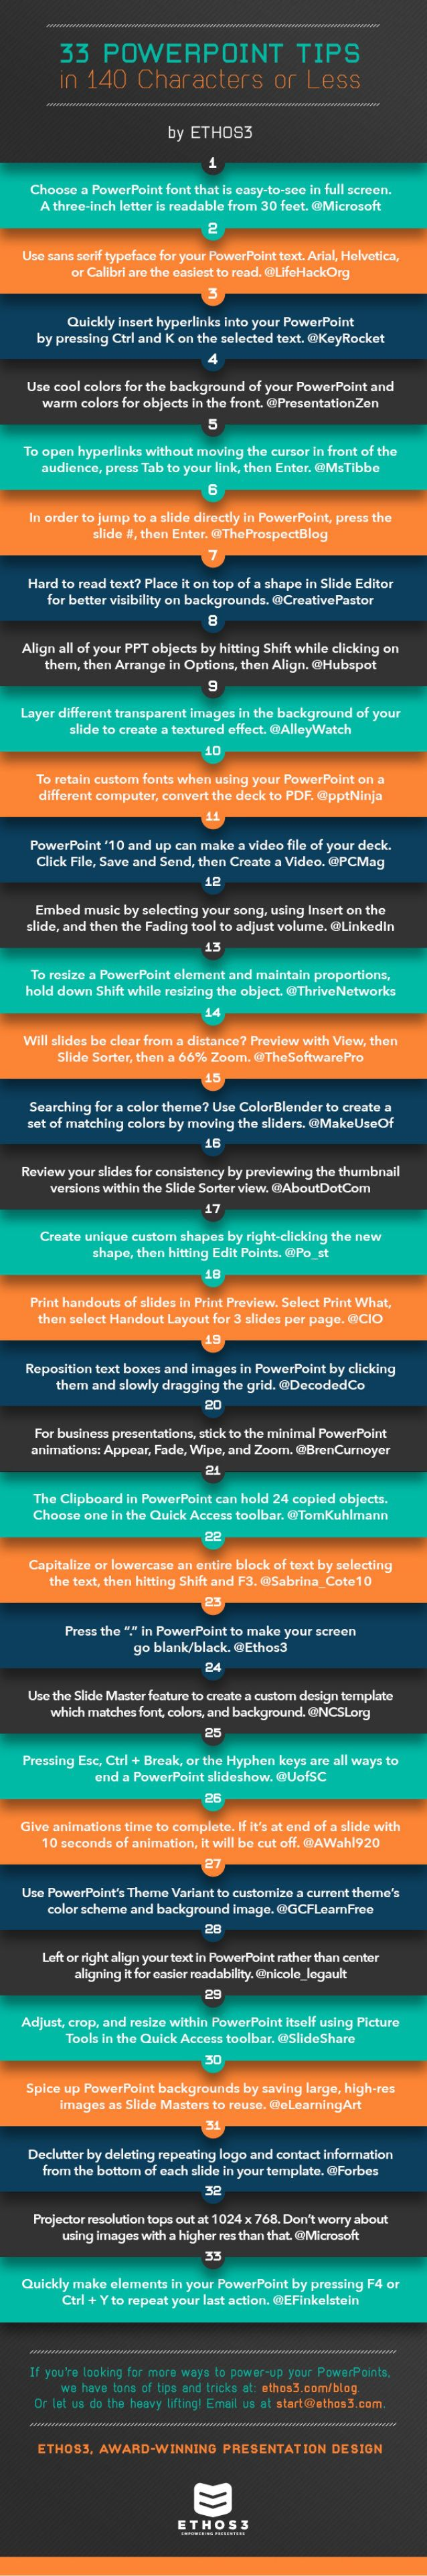 Running windows vista and microsoft office including powerpoint - 33 Consejos Sobre Powerpoint En 140 Caracteres Infografia Infographic